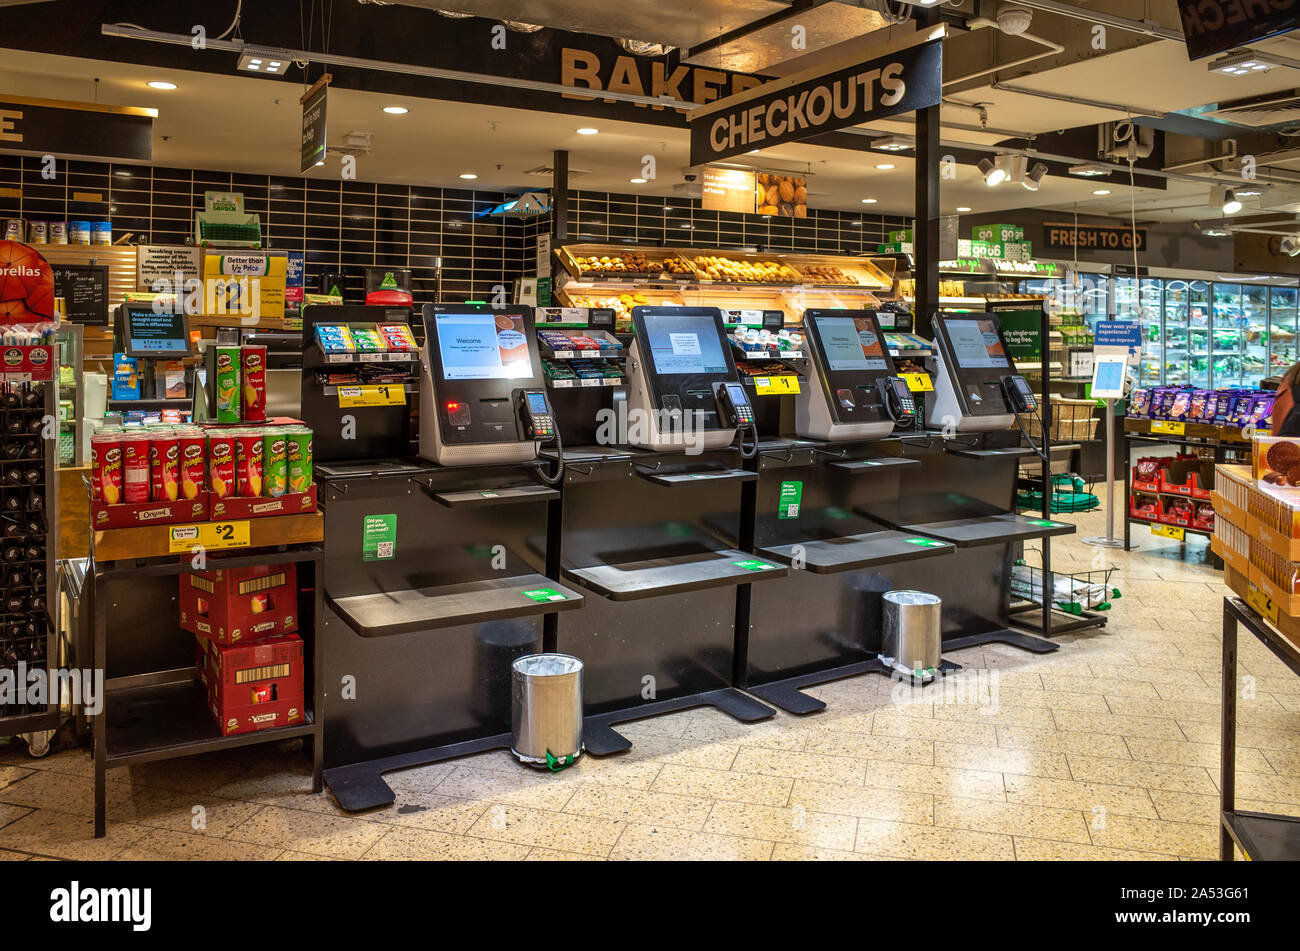 Self Check Out Supermarket High Resolution Stock Photography And Images Alamy